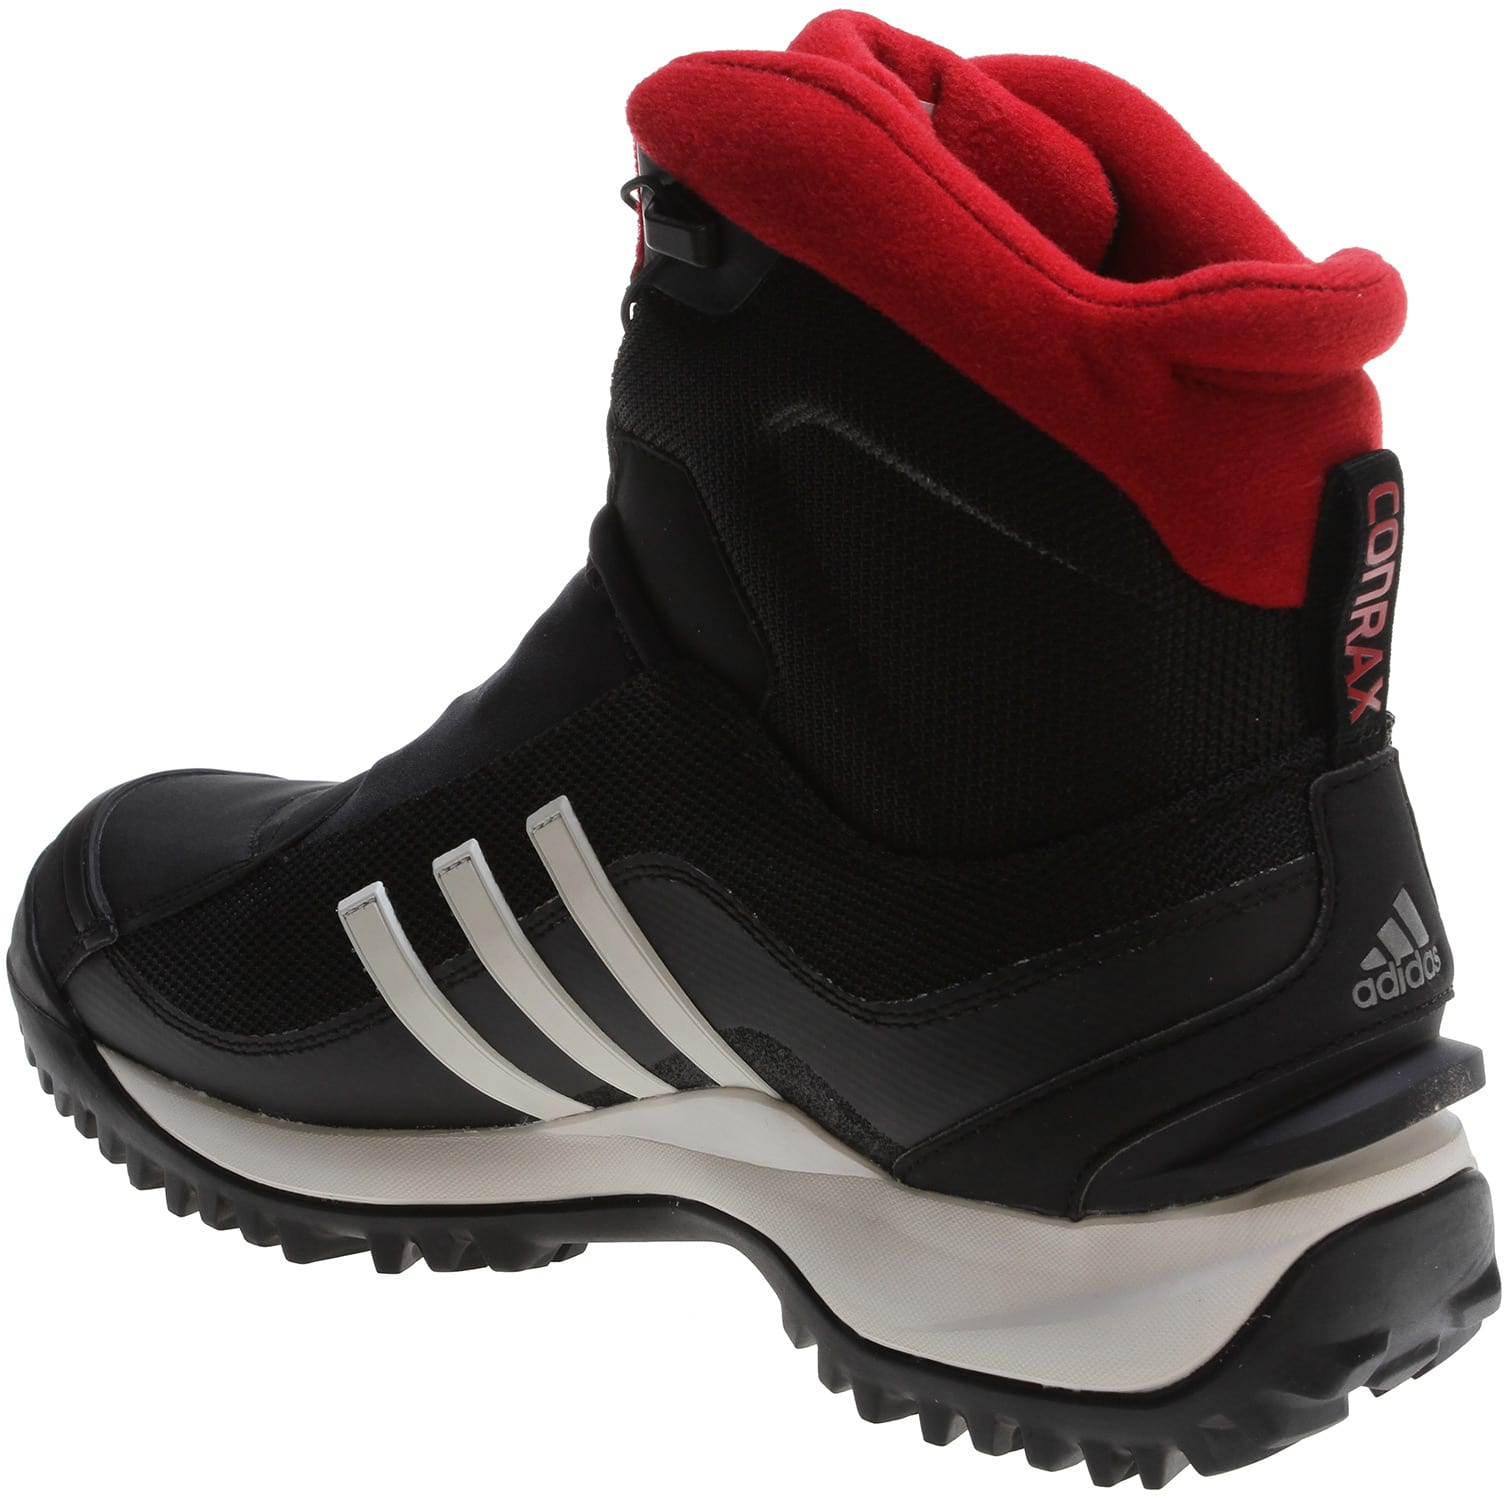 on sale adidas terrex conrax cp primaloft hiking boots up